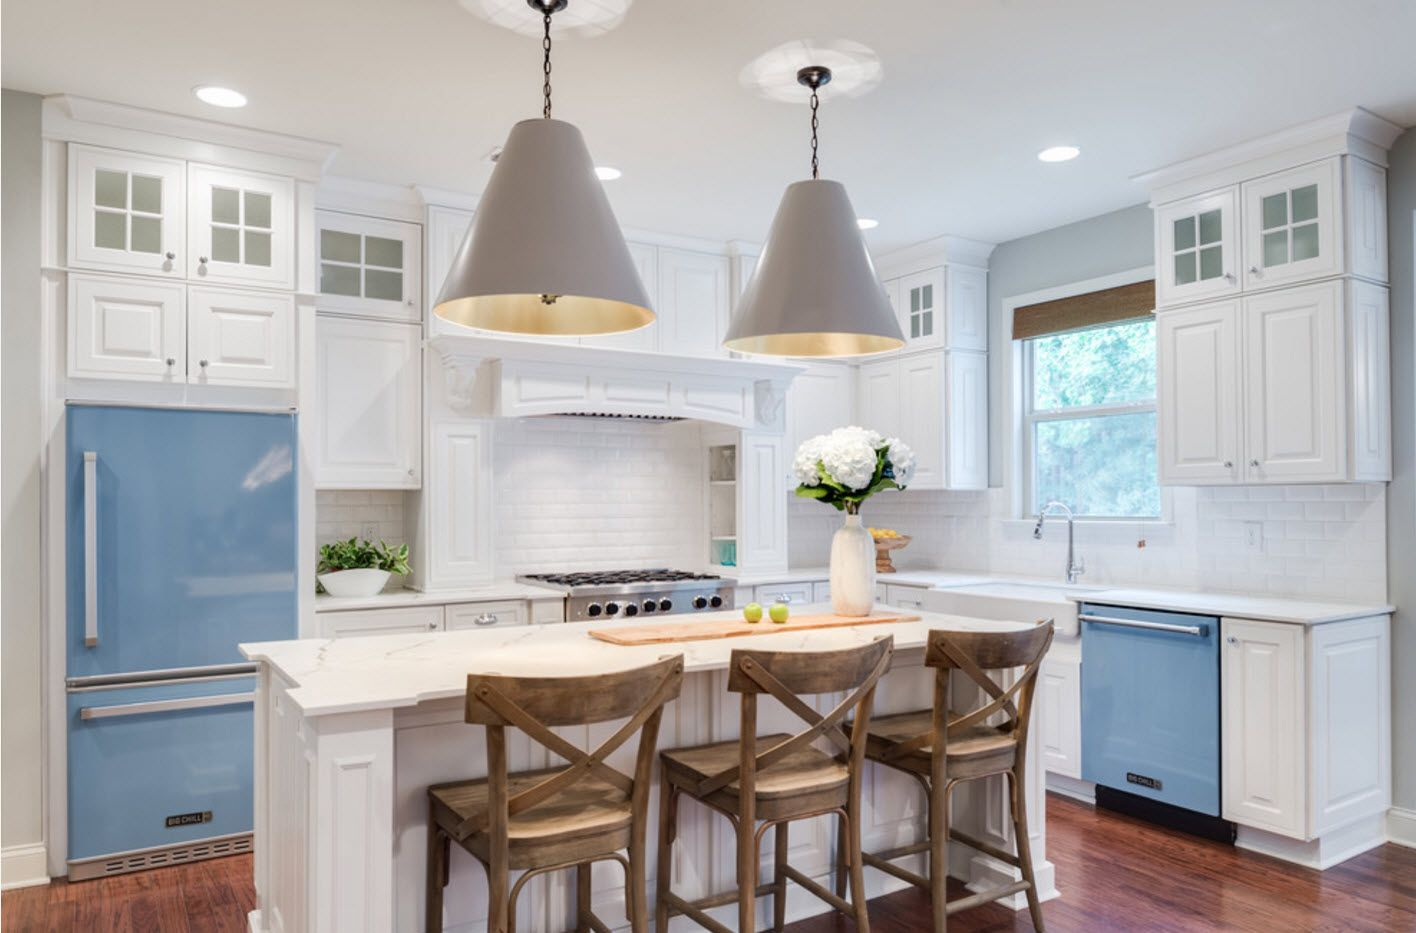 Gray big lampshades over the kitchen island with set of wooden chairs at it